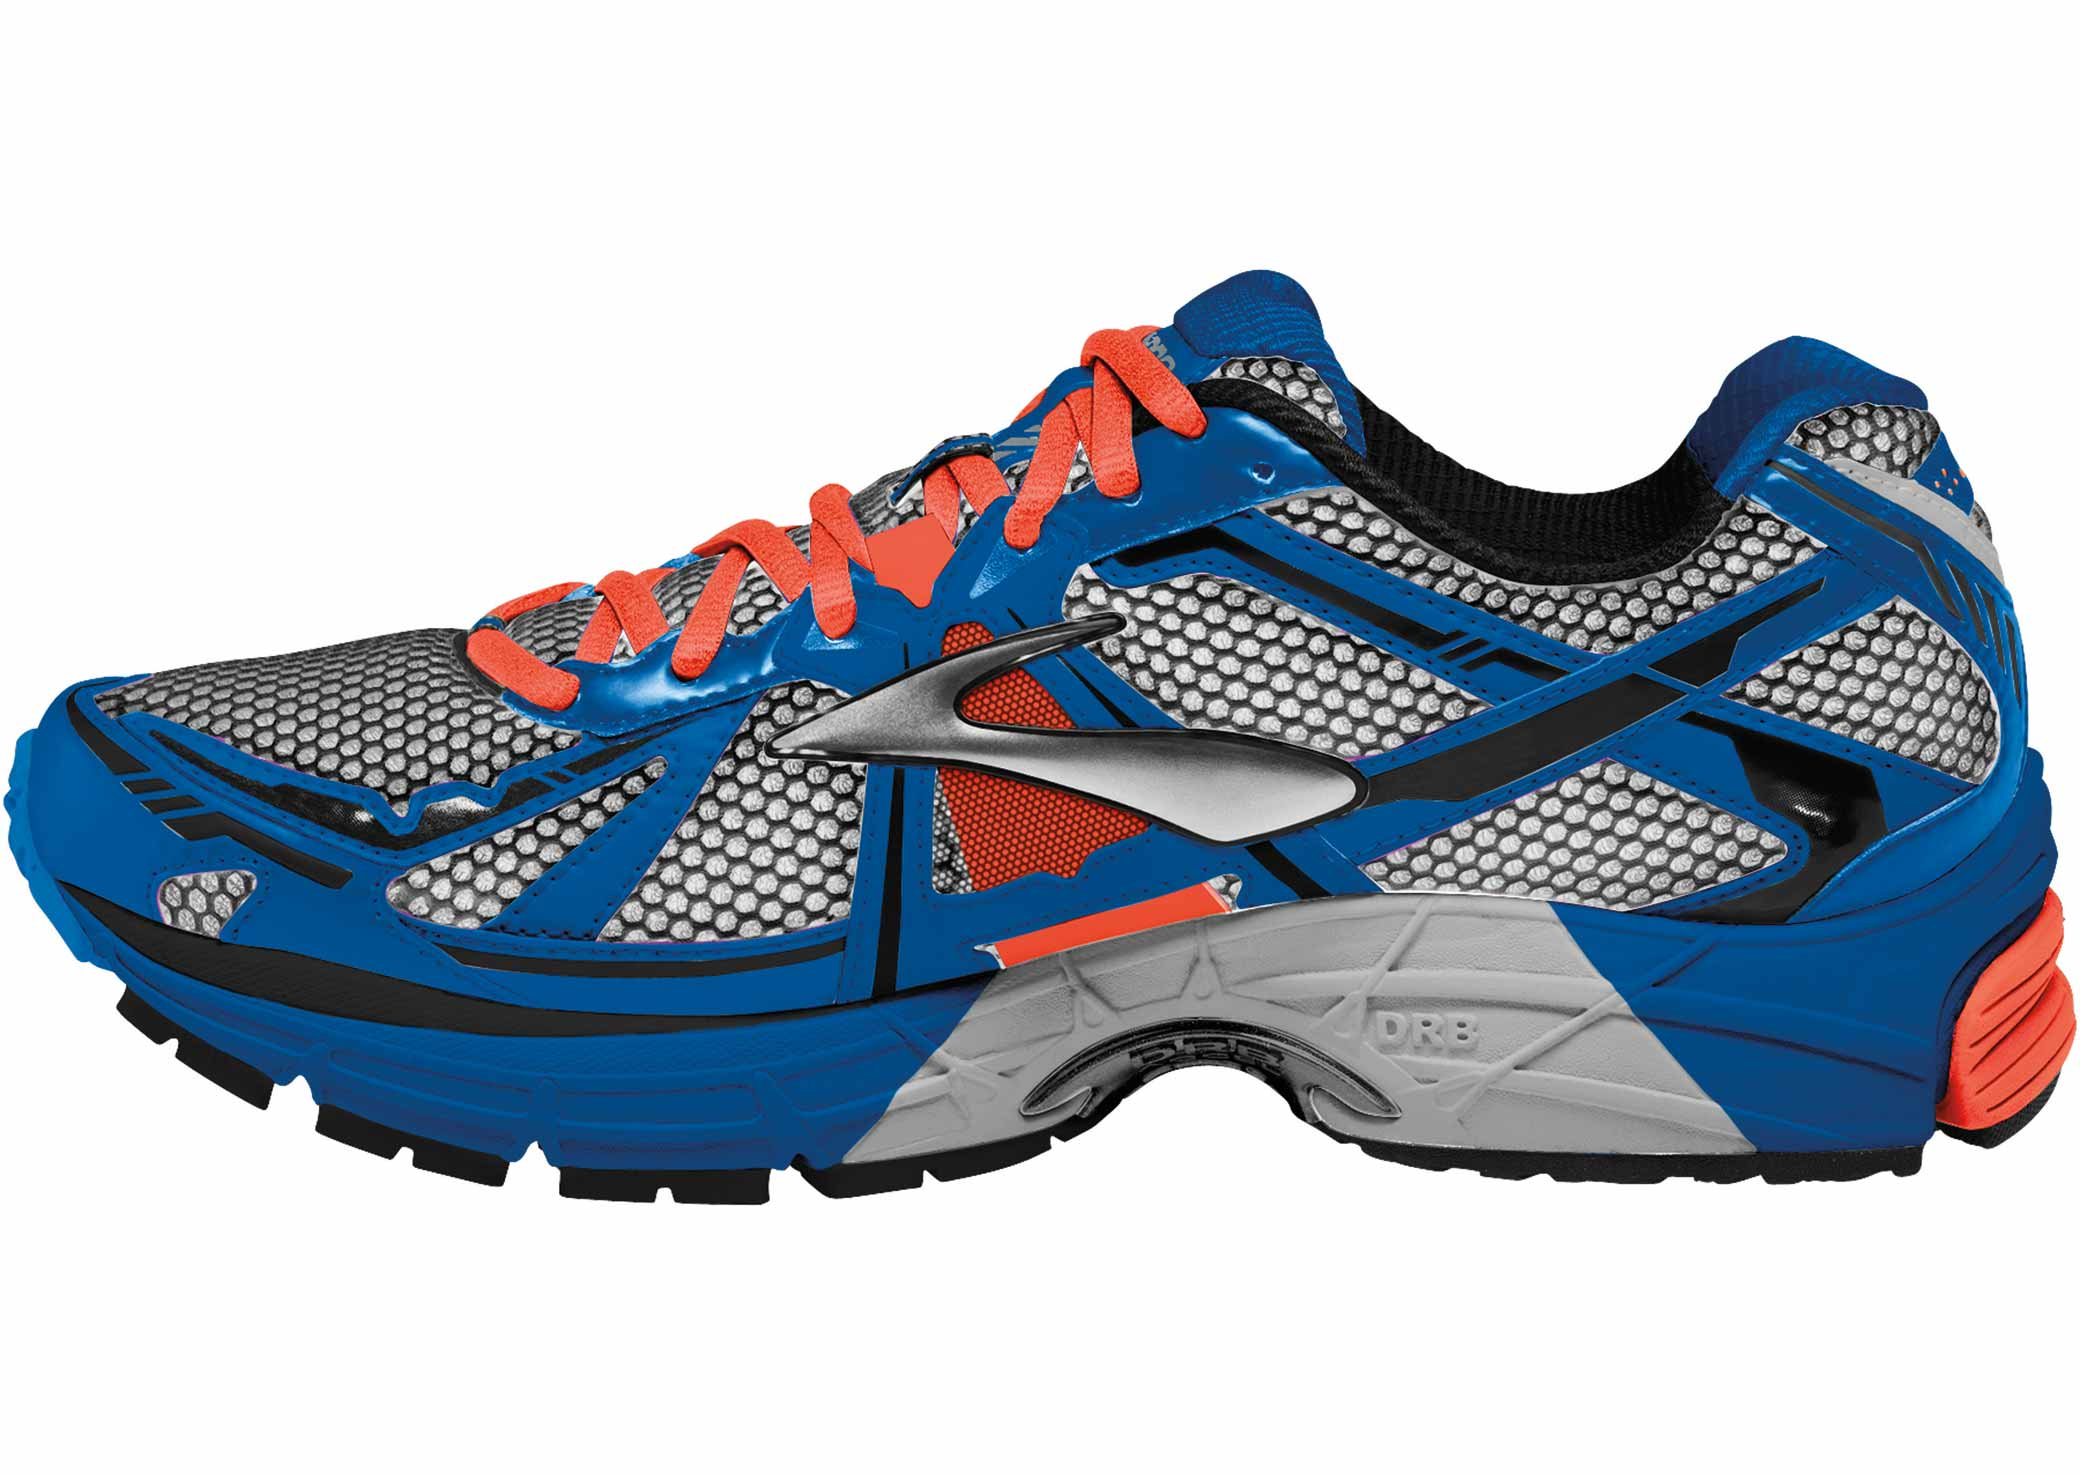 How shoes can prevent overpronation